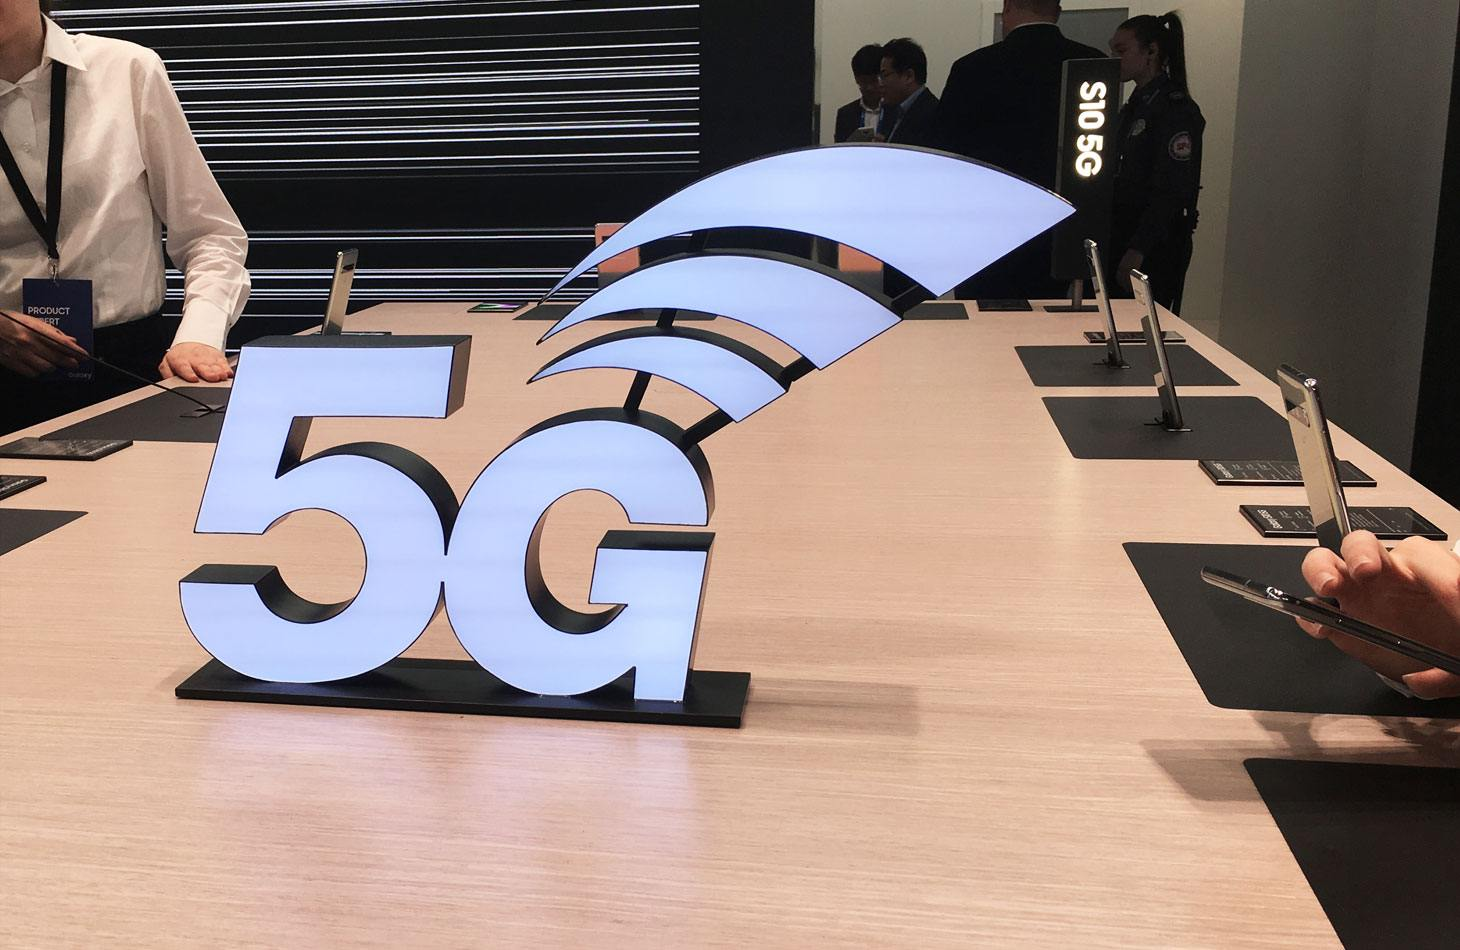 Mobile World Congress 2019: le reti 5G stanno finalmente arrivando.